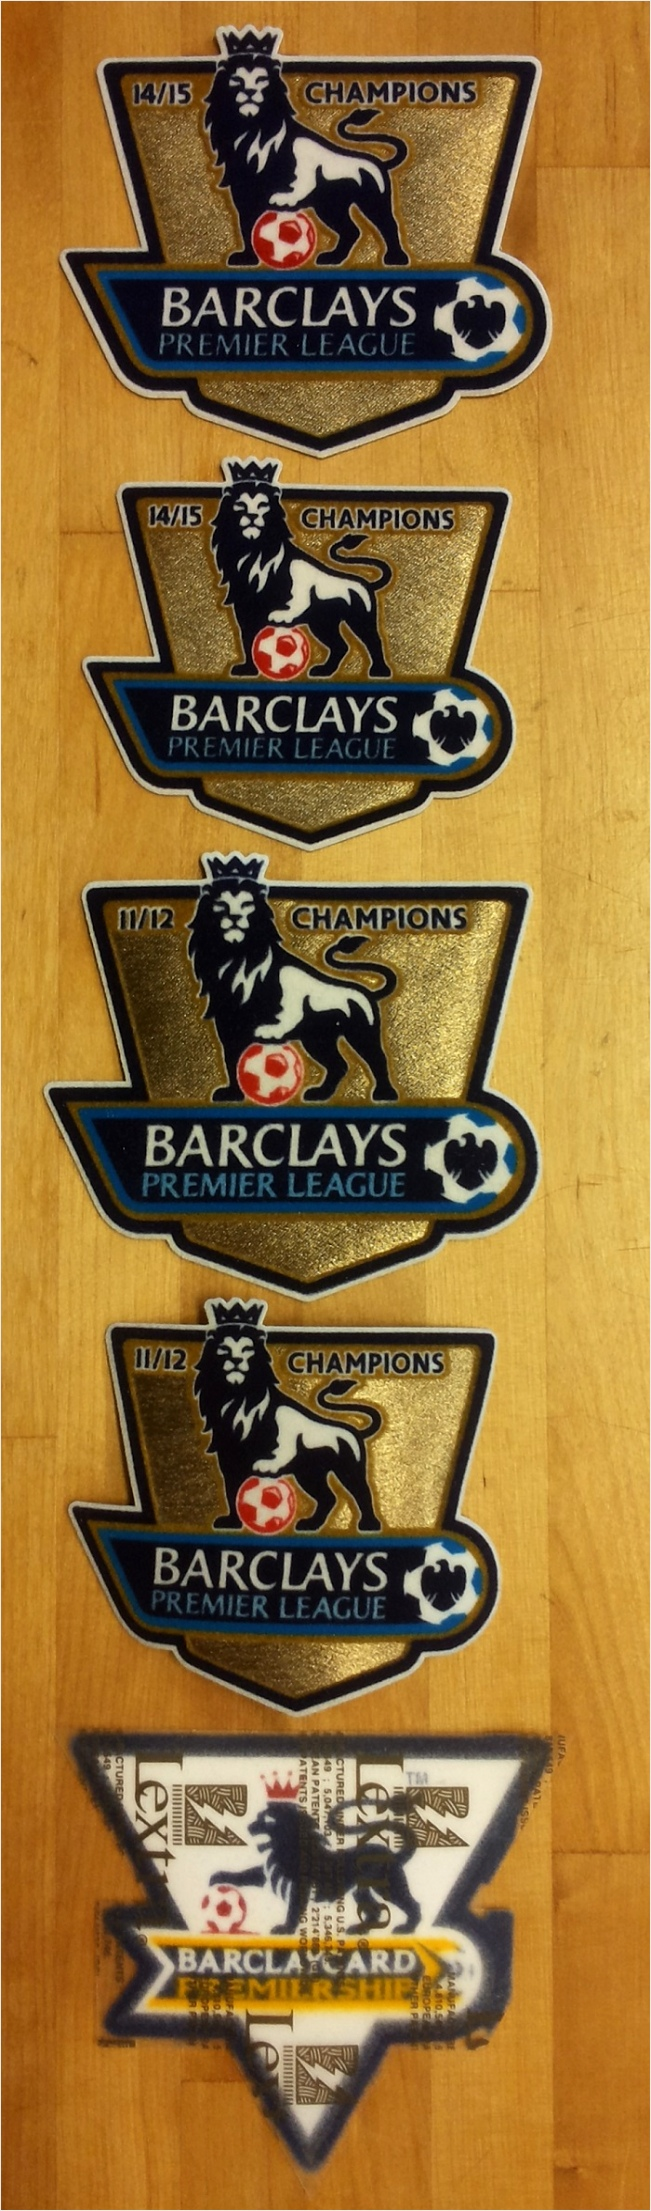 EPL champs badges timeline 1992 2016 tioou